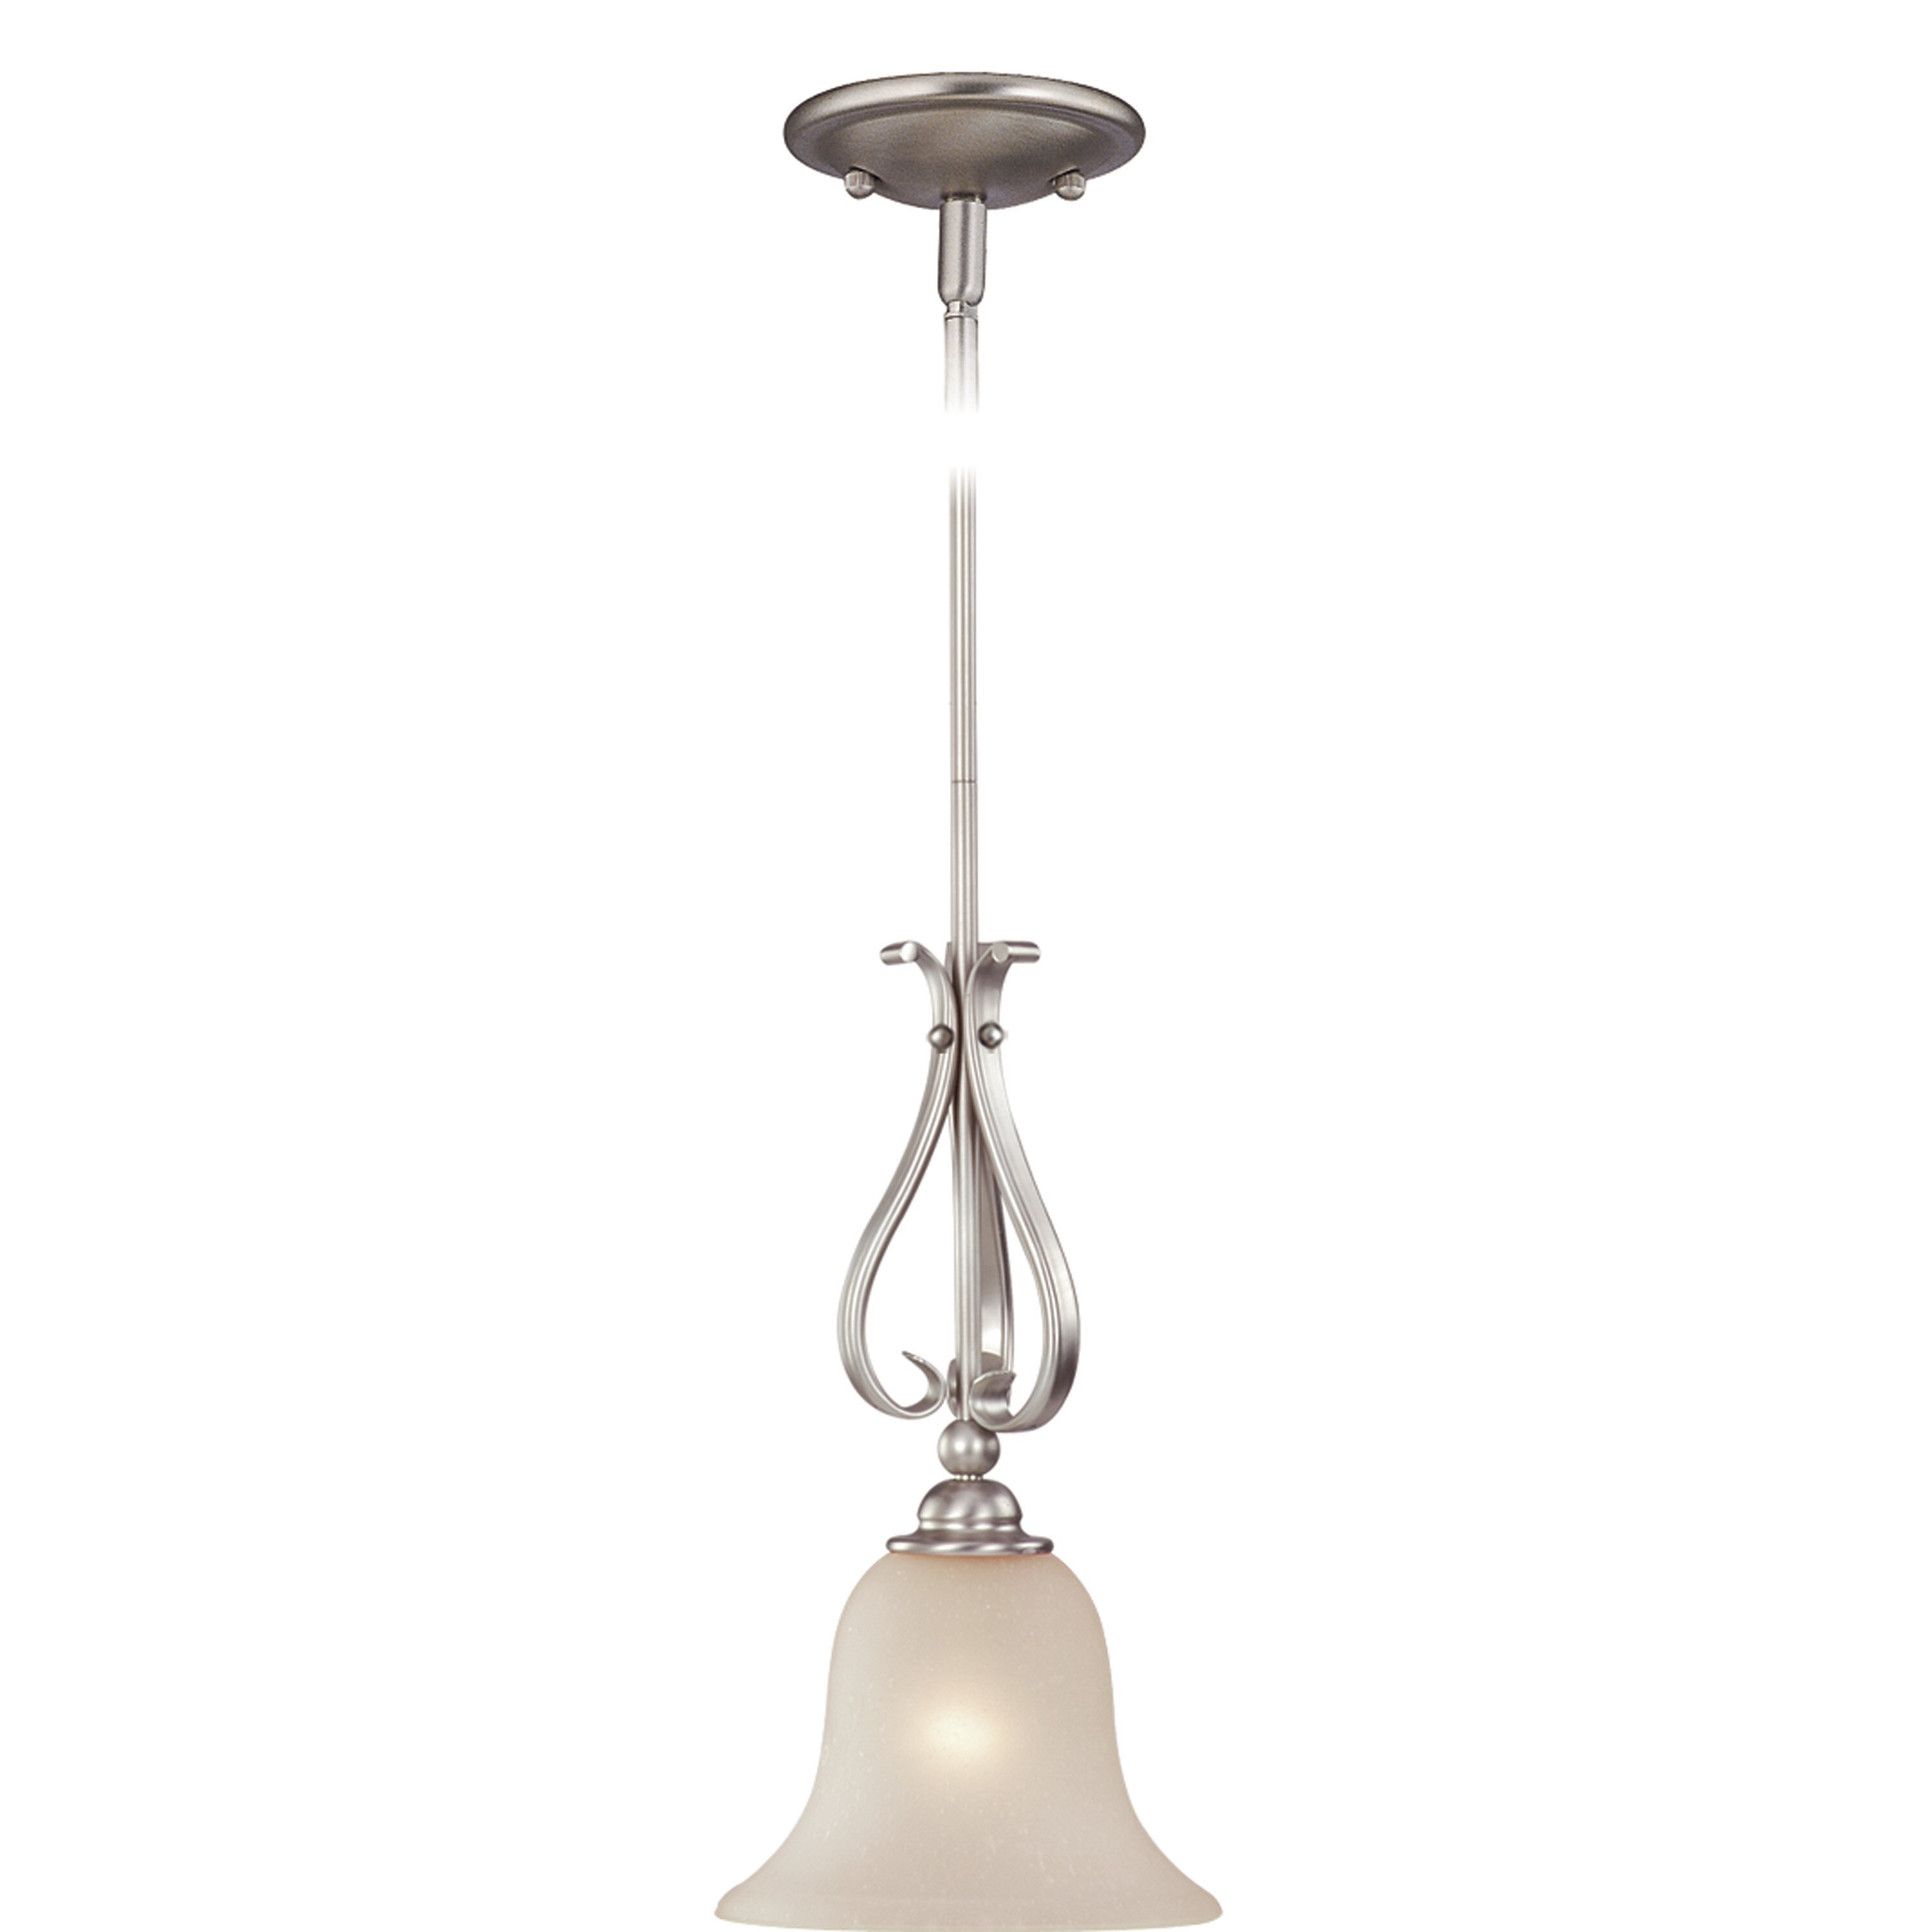 Van Horne 1 Light Cone Pendant For Van Horne 3 Light Single Teardrop Pendants (View 9 of 30)